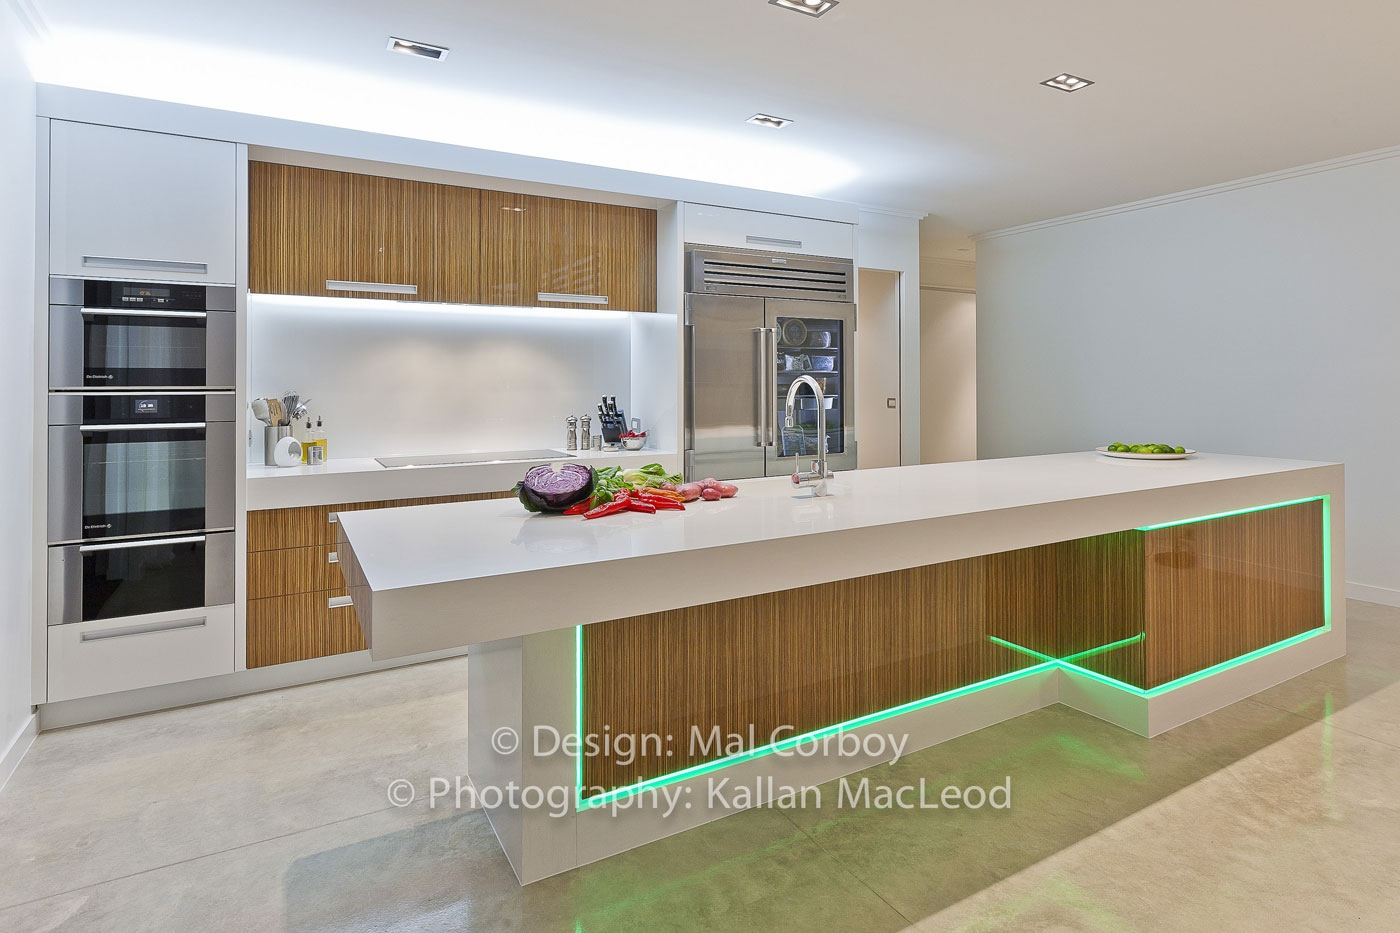 Minimalist modern kitchen interior design ideas for Minimalist kitchen design